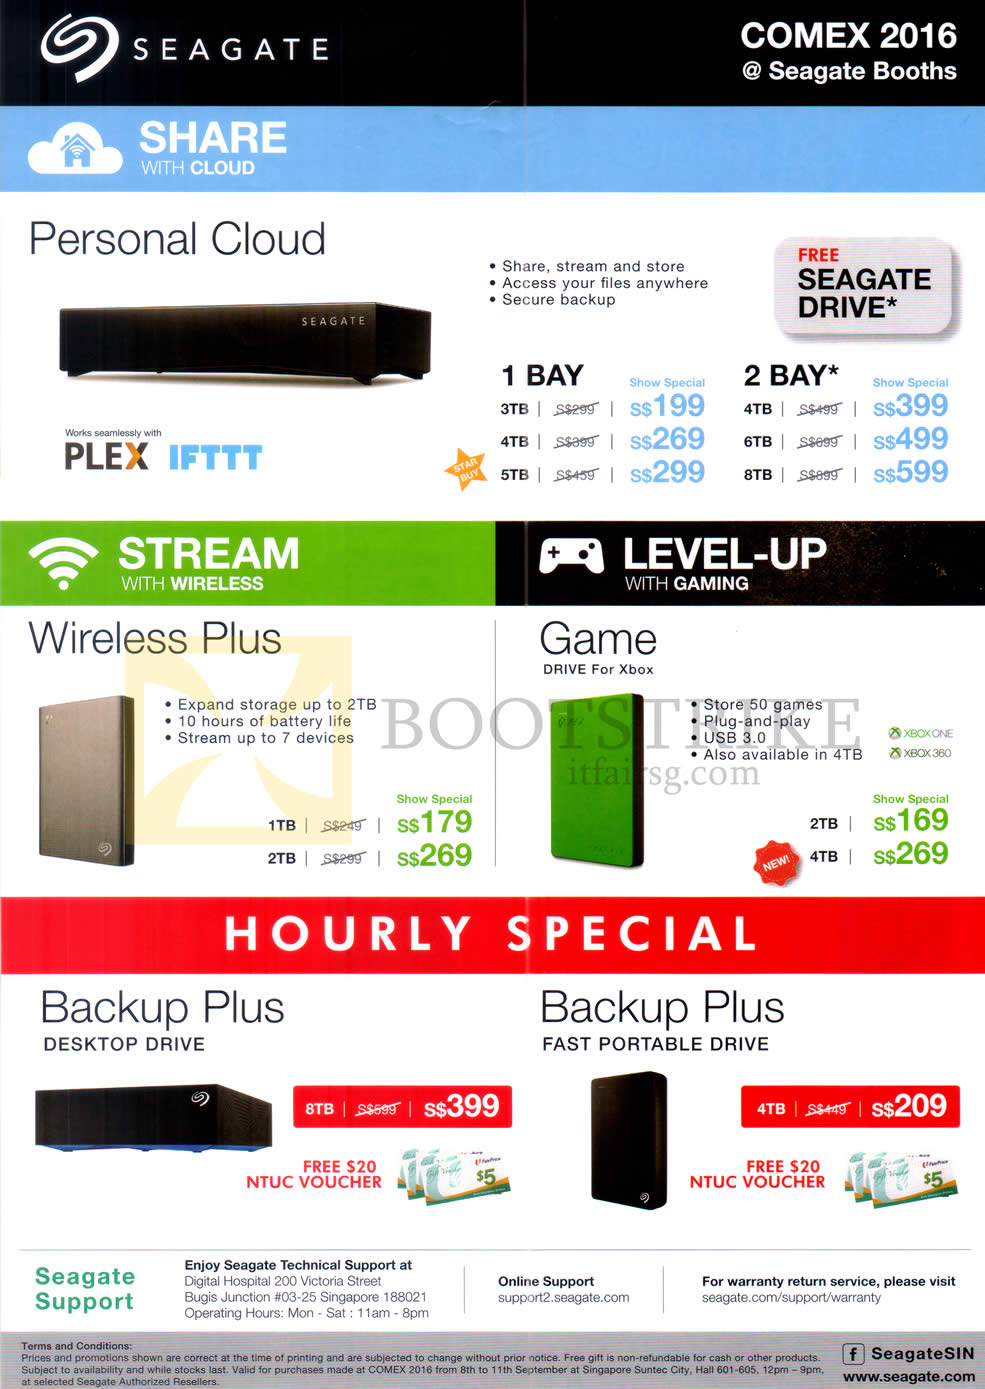 COMEX 2016 price list image brochure of Seagate NAS Personal Cloud External Storage, Wireless Plus, Game Drive, Backup Plus Desktop Drive, Fast Portable Drive, 1 Bay, 2 Bay, 1TB, 2TB, 3TB, 4TB, 5TB, 6TB, 8TB